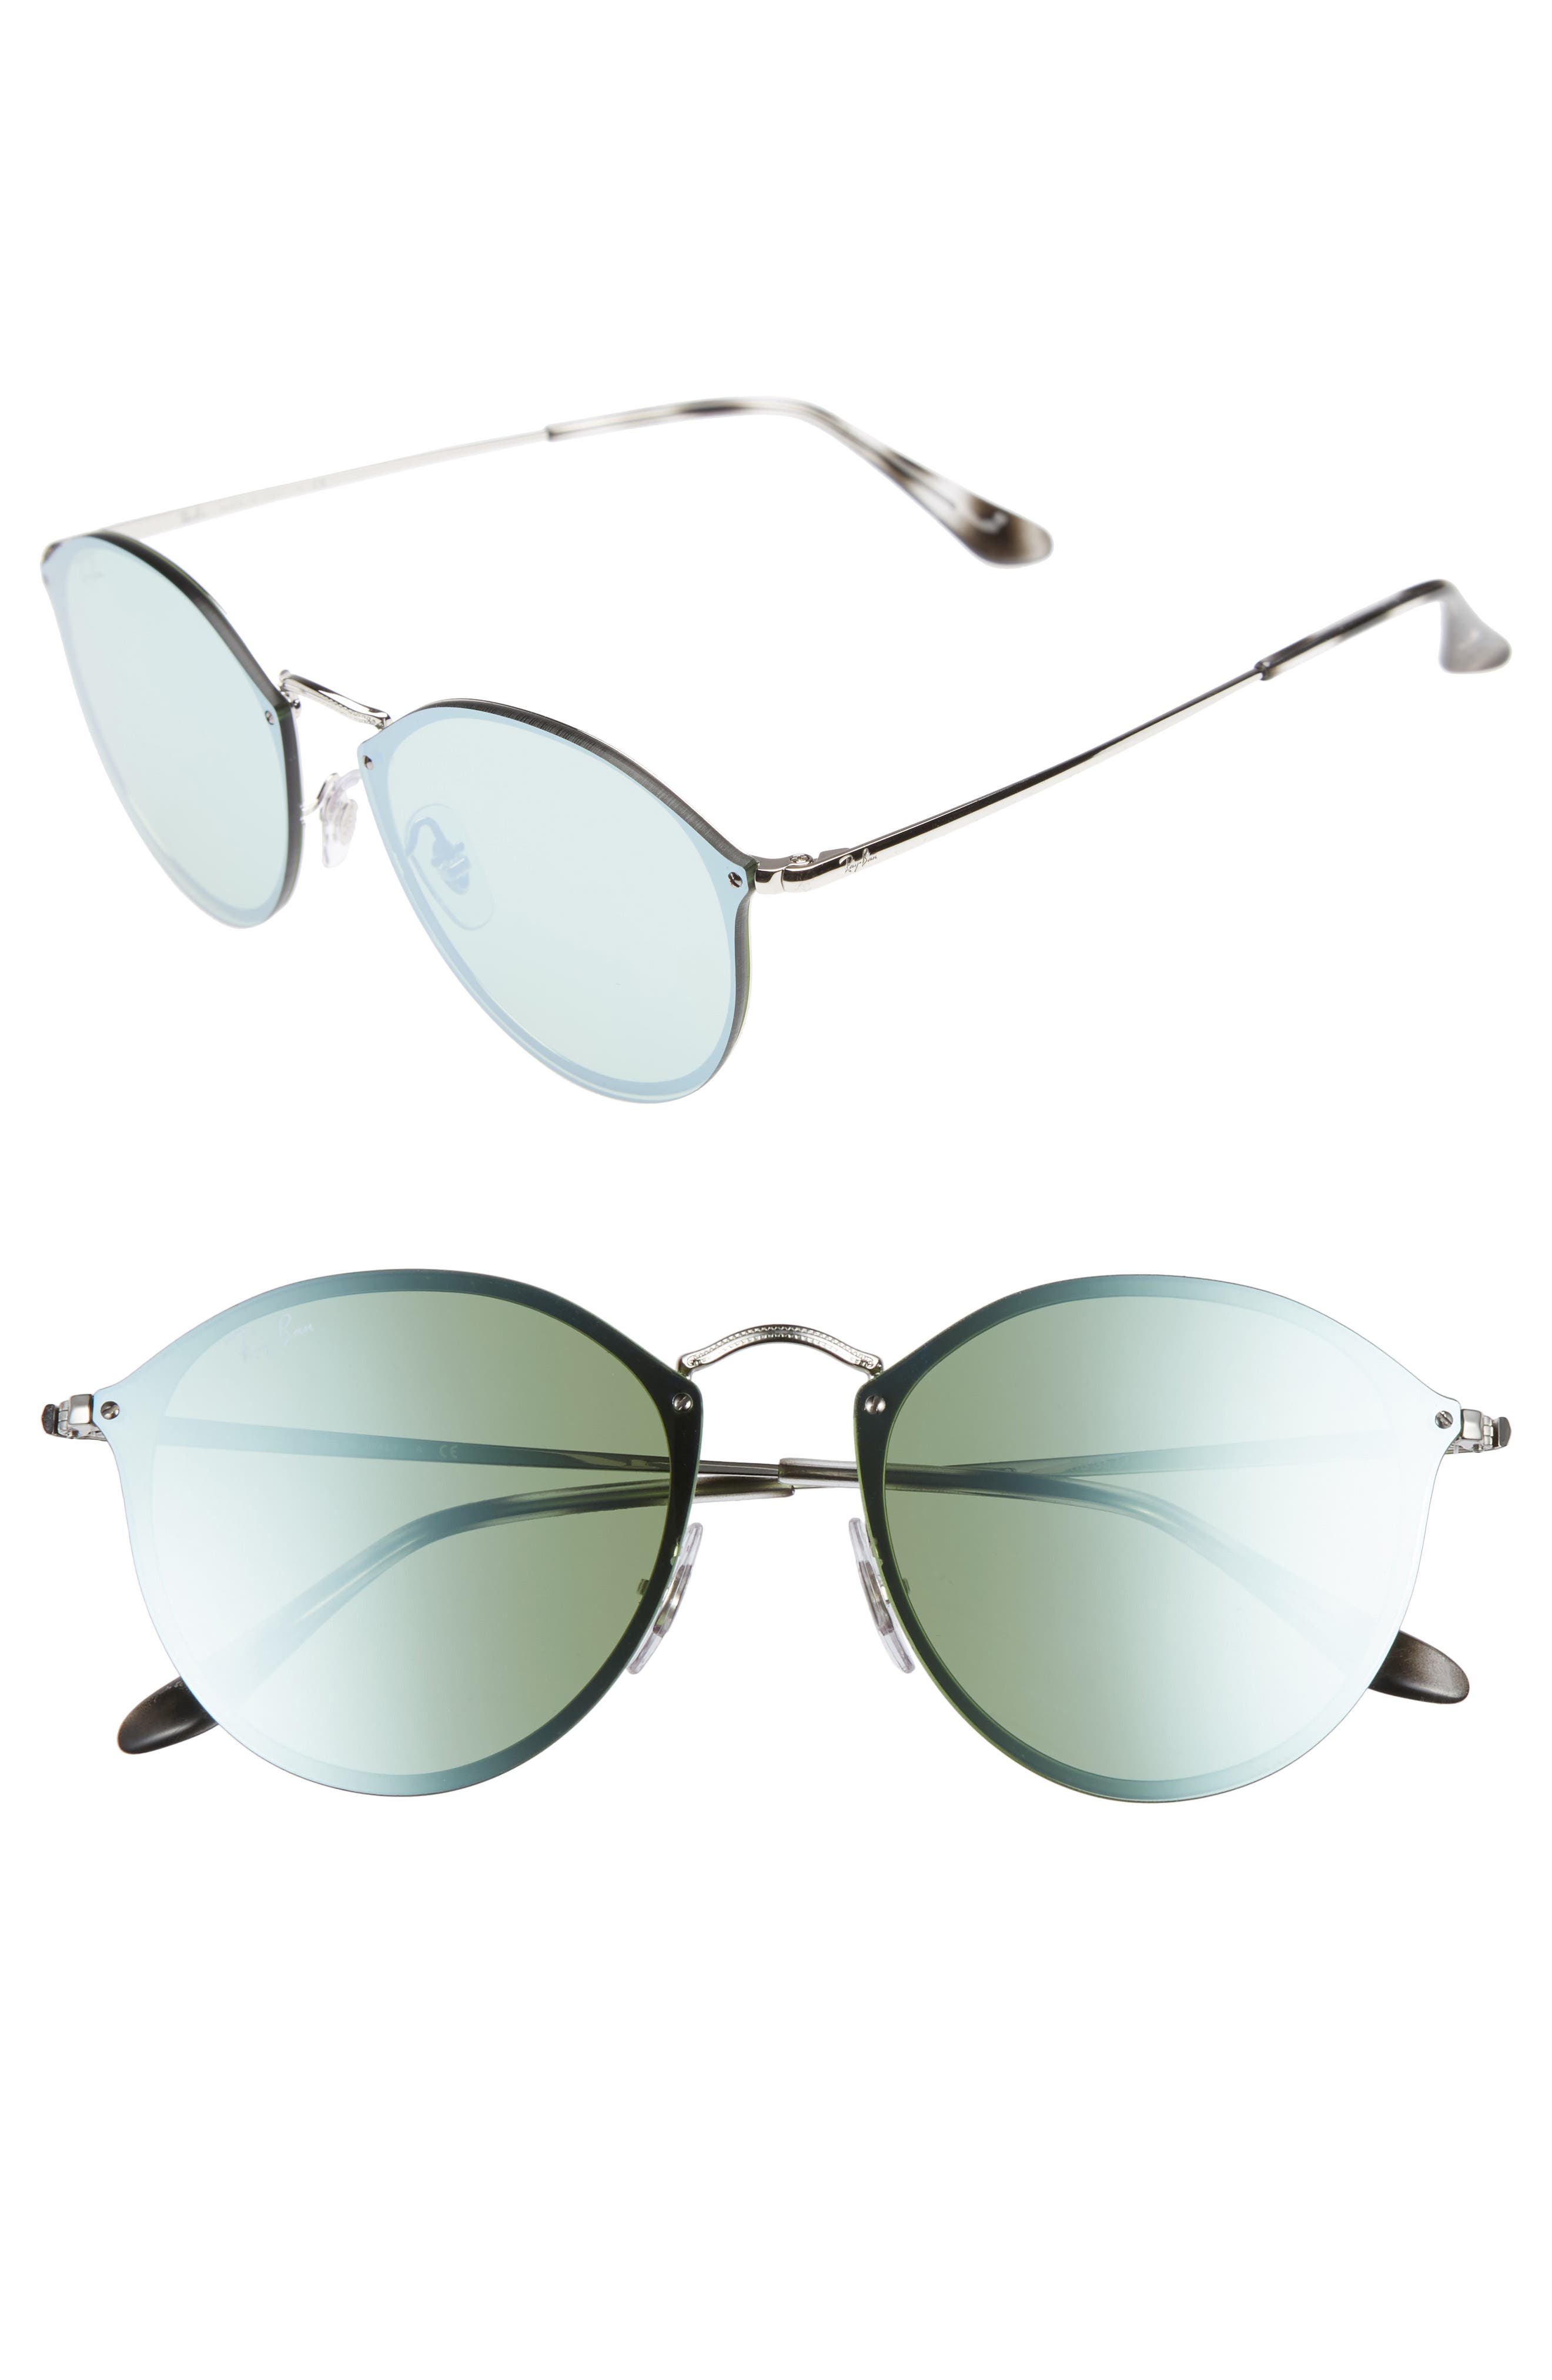 Ray-Ban 59mm Round Sunglasses